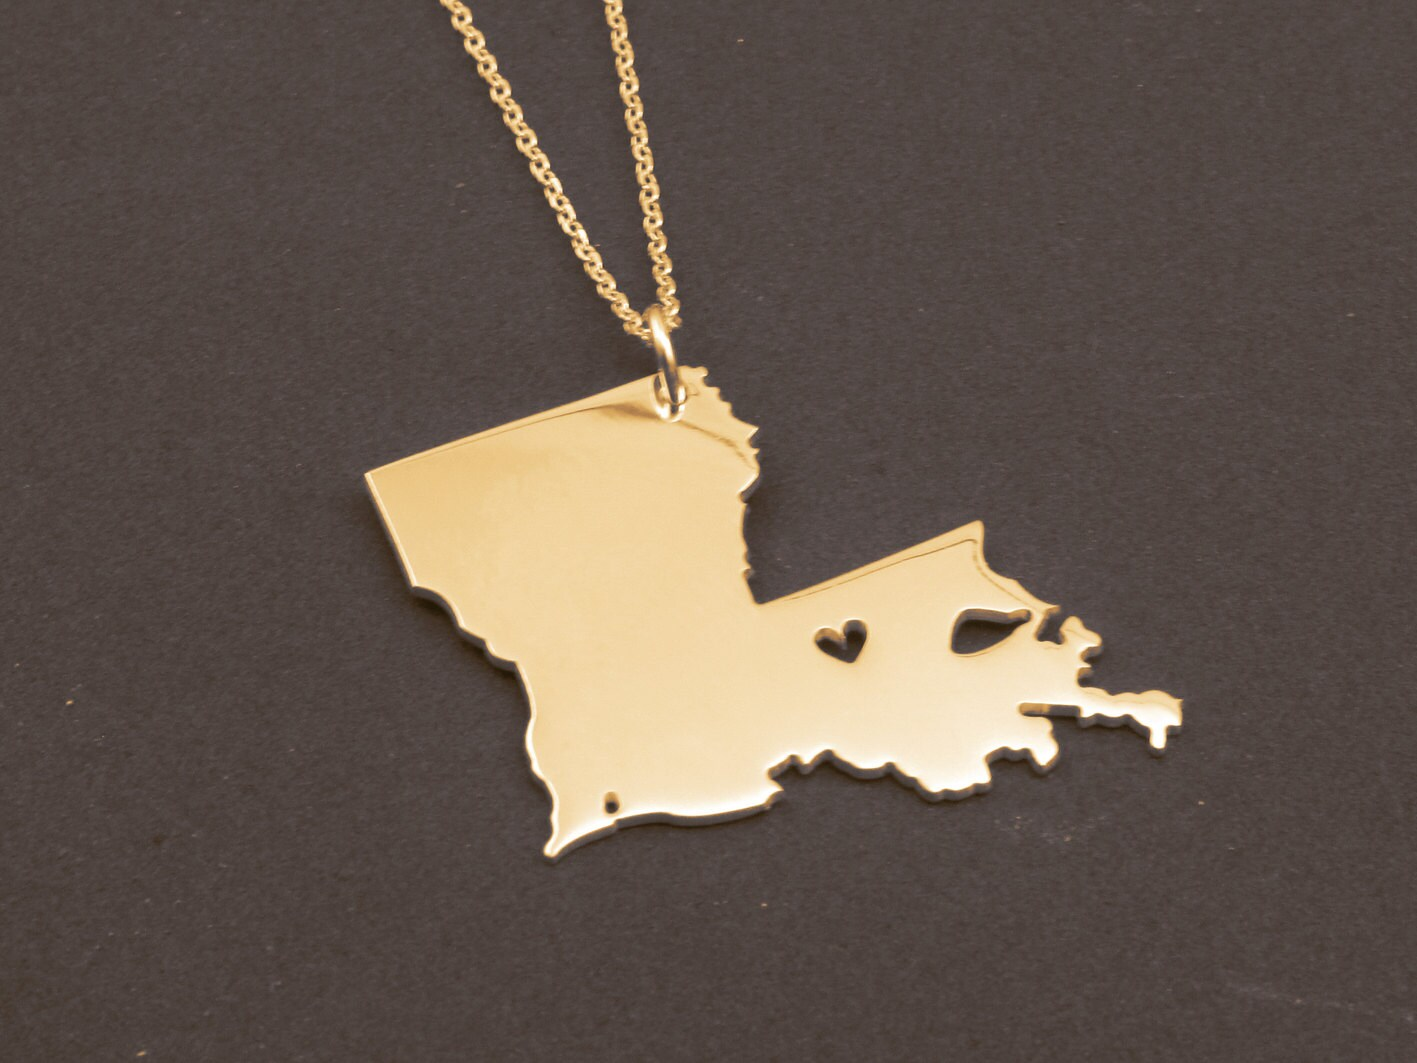 state necklace louisiana state charm necklace by